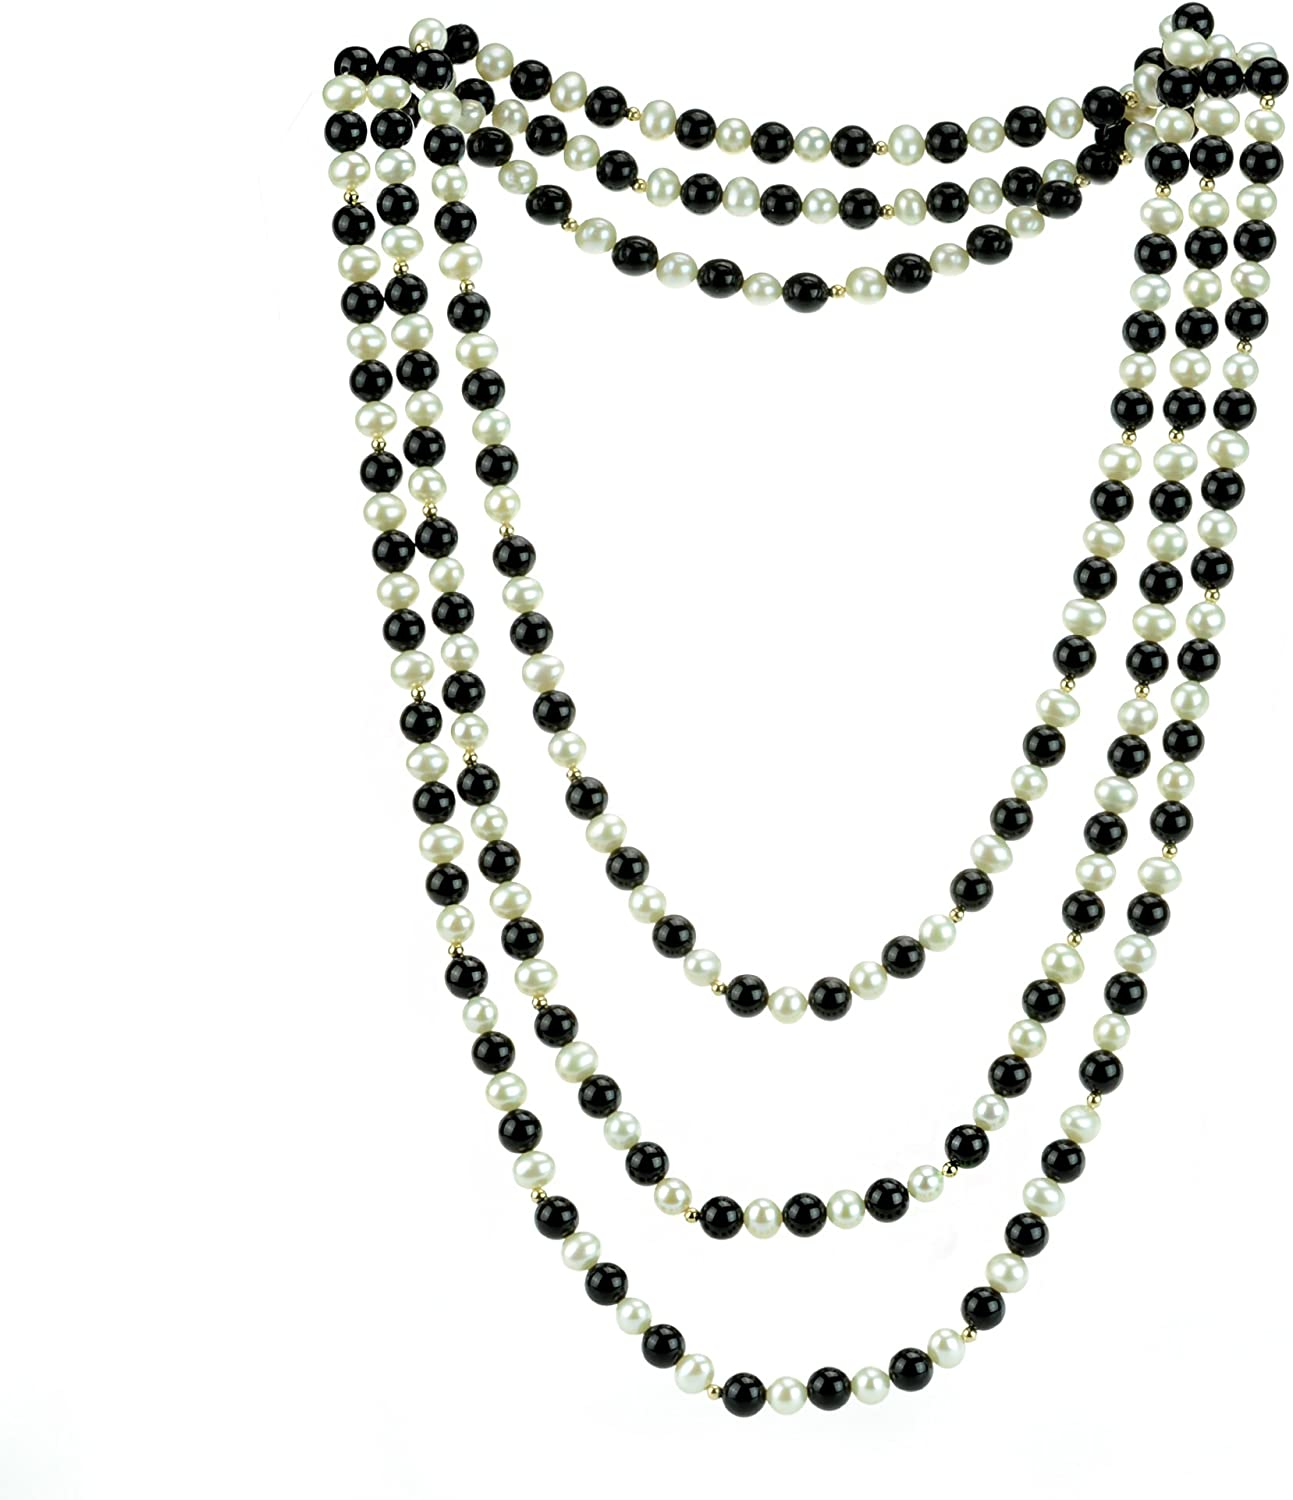 La Regis Jewelry 7-7.5mm White Freshwater Cultured Pearl 8mm Simulated Onyx & 14k Yellow Gold Beads Endless Necklace, 80